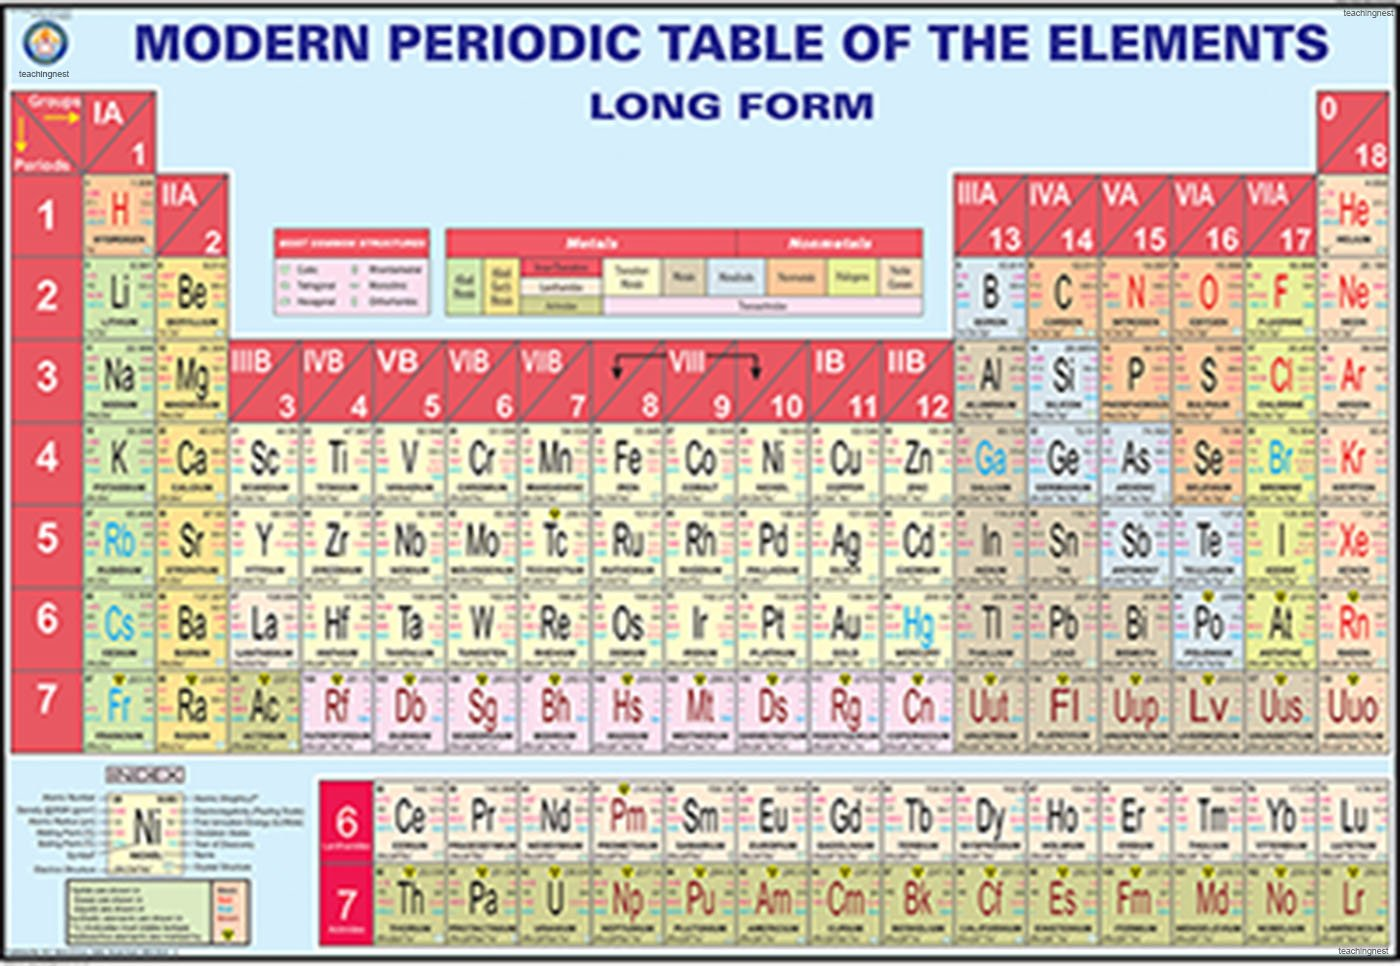 Buy modern periodic table of the elements chart 100x70cm book buy modern periodic table of the elements chart 100x70cm book online at low prices in india modern periodic table of the elements chart 100x70cm urtaz Choice Image